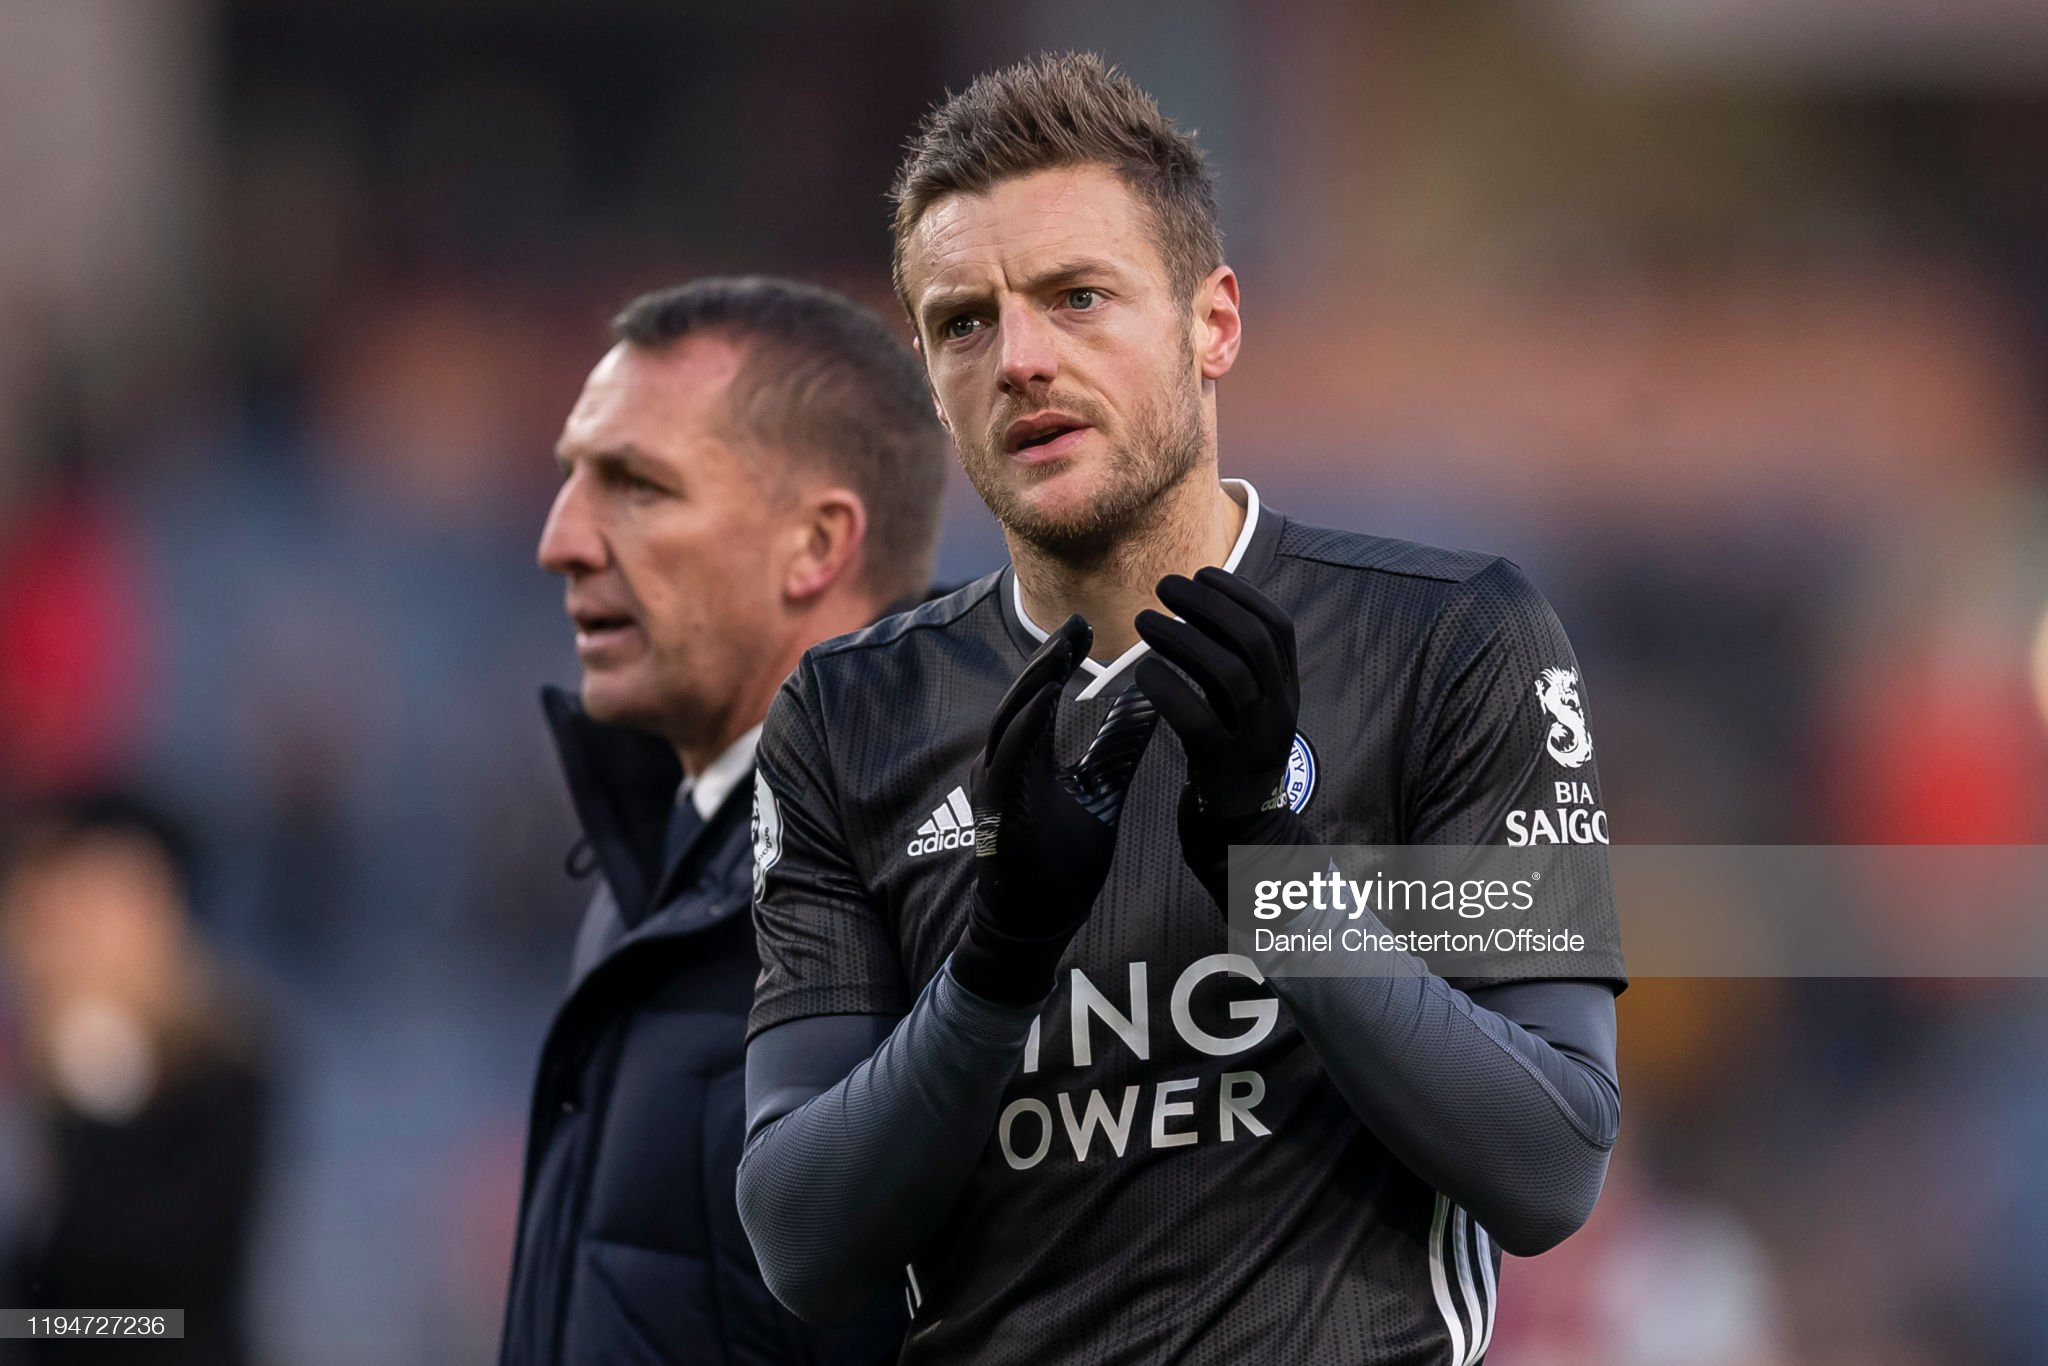 Burnley FC v Leicester City - Premier League : News Photo